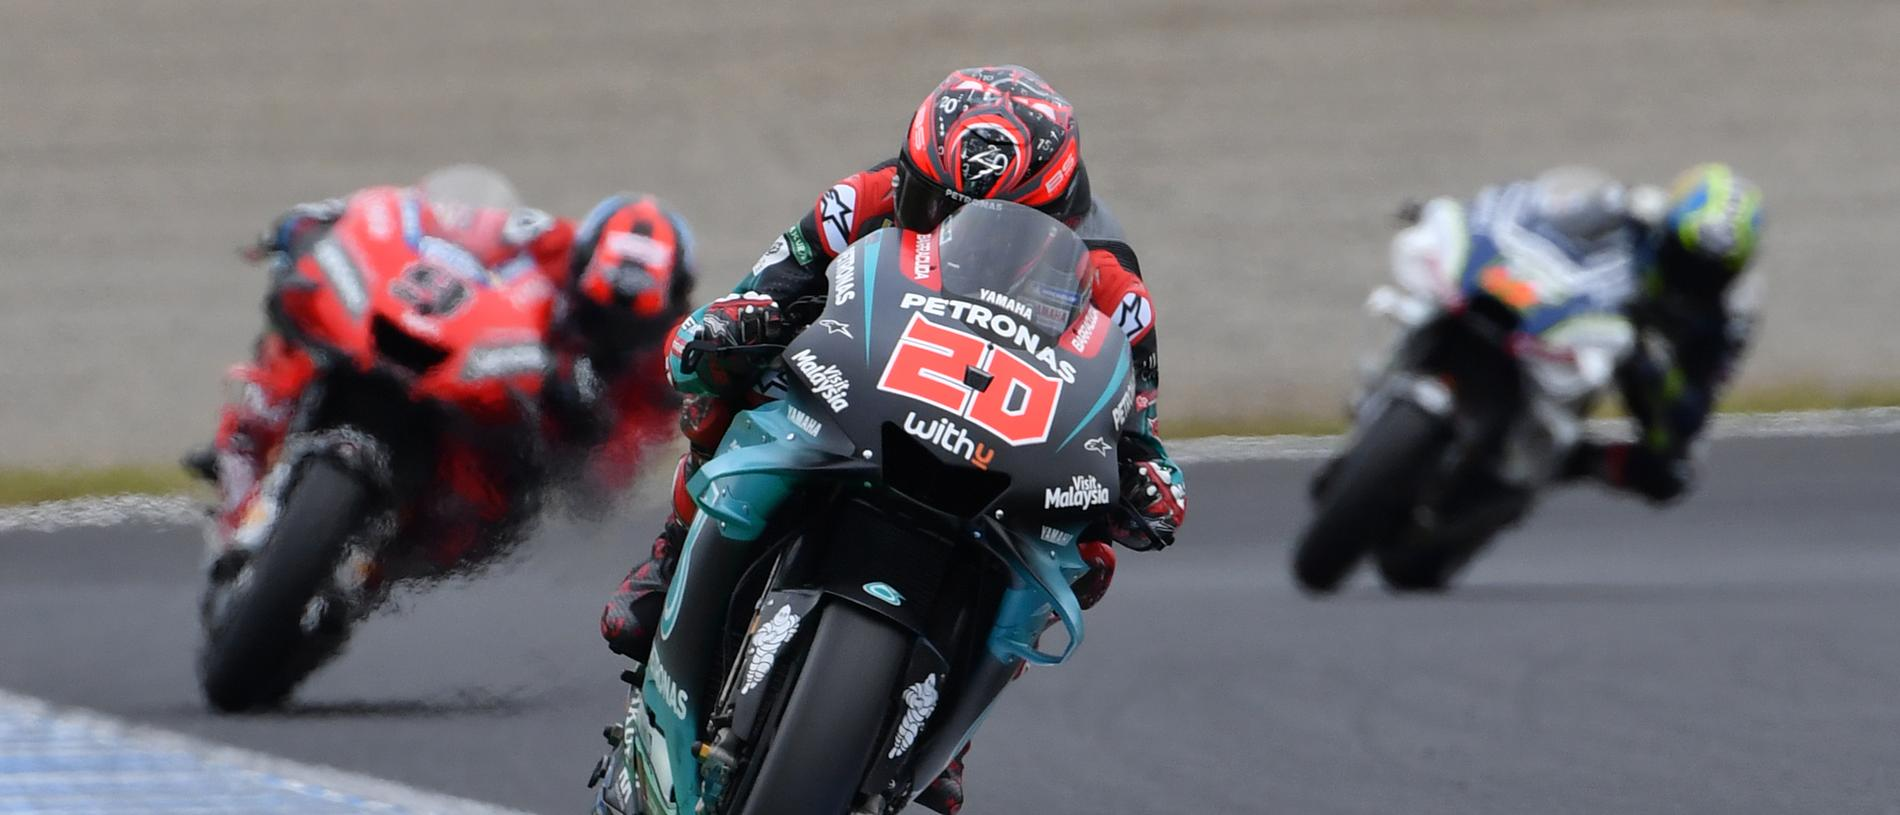 Petronas Yamaha SRT rider Fabio Quartararo of France (C) leads Ducati Team rider Danilo Petrucci of Italy (L) during the second free practice session at the Twin Ring Motegi circuit in Motegi, Tochigi prefecture on October 18, 2019. (Photo by TOSHIFUMI KITAMURA / AFP) (Photo by TOSHIFUMI KITAMURA/AFP via Getty Images)